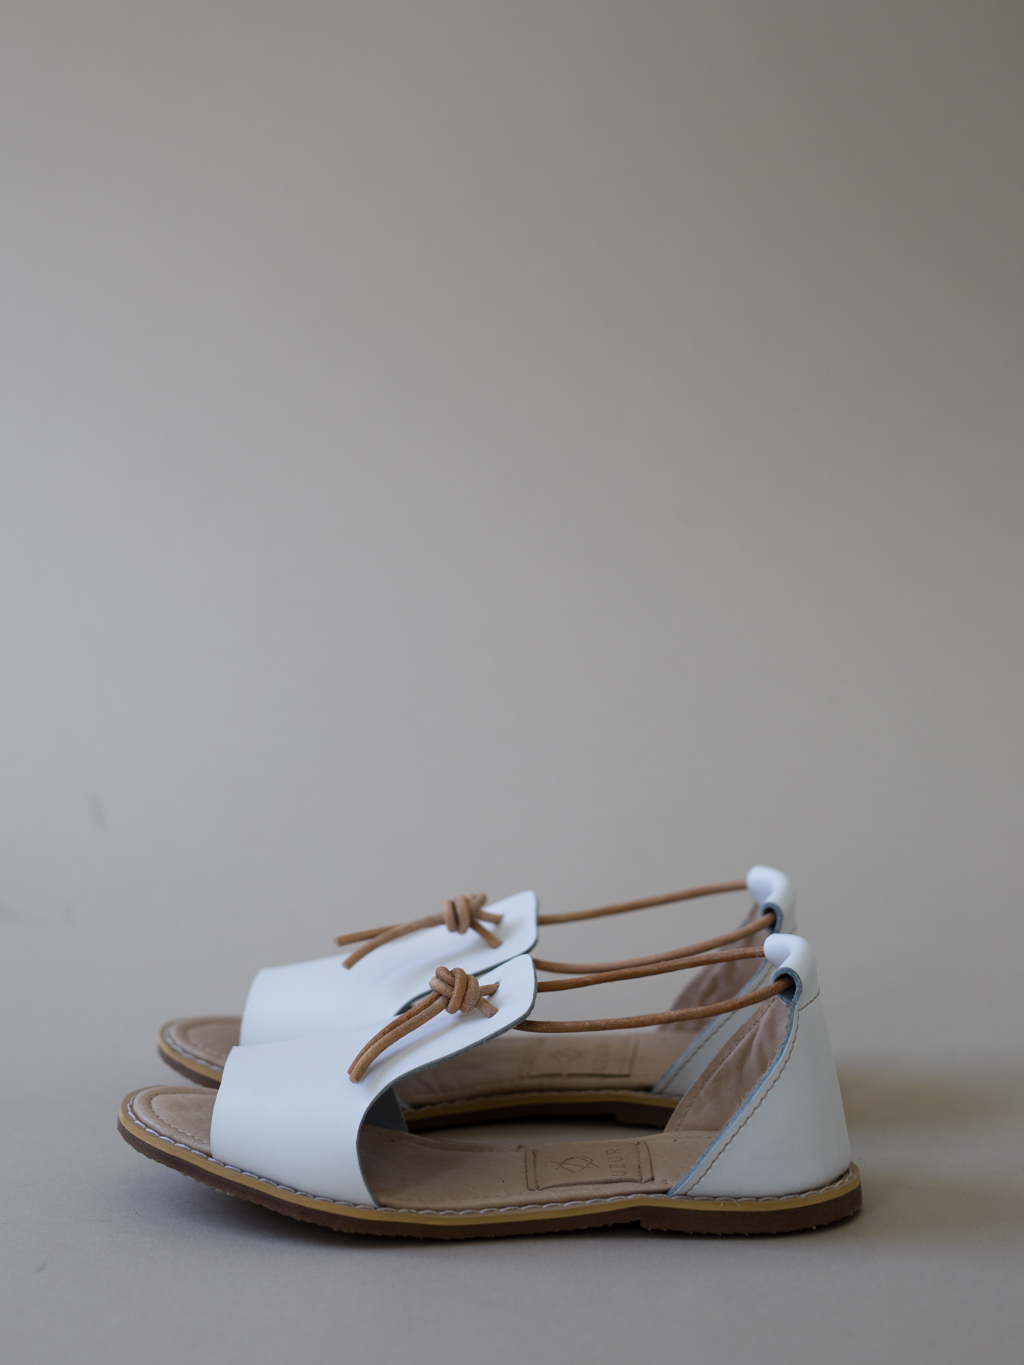 Fundo· Swahili translation :knot  The break-out star of summer 2017 is undoubtedly the FUNDO. Demure and carefully crafted, the FUNDO is the staple you return to time and again to balance your inner hipster and French fashionista. Elegant but edgy, these kicks will transition seamlessly between crisp mornings + sultry summer afternoons.   The Fundo is the first kid on the block from our summer 2017 offering: crafted from full grain leather with a soft insole for added comfort. A simple top-knot adds subtle detail and a rubber sole (for added grip) ensures its beauty equates its durability.